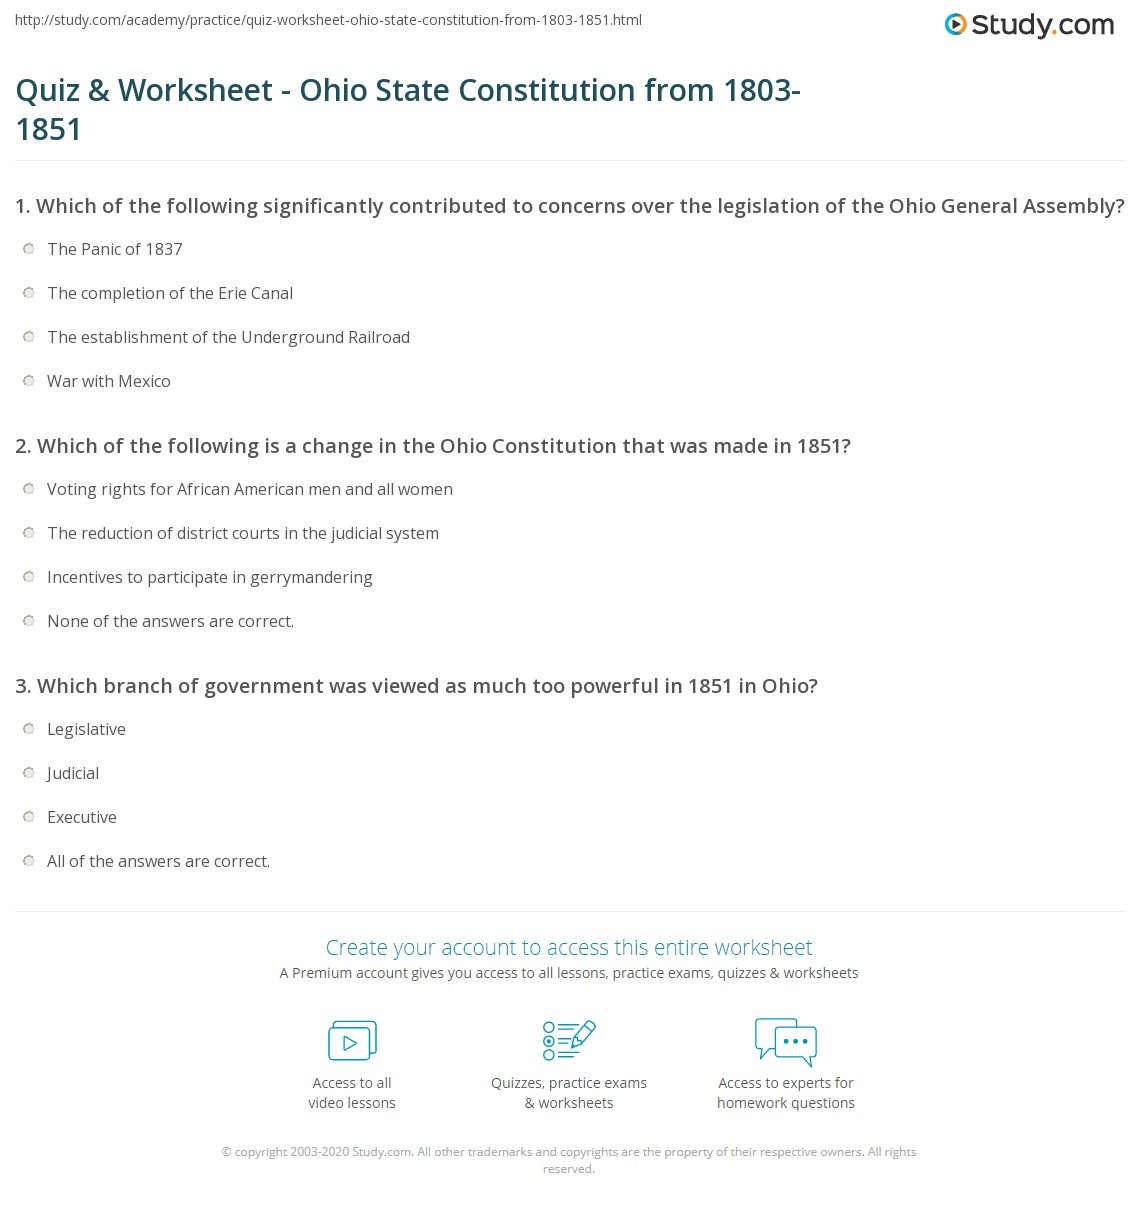 Worksheets Icivics Worksheets quiz worksheet ohio state constitution from 1803 1851 study com print changes to the worksheet